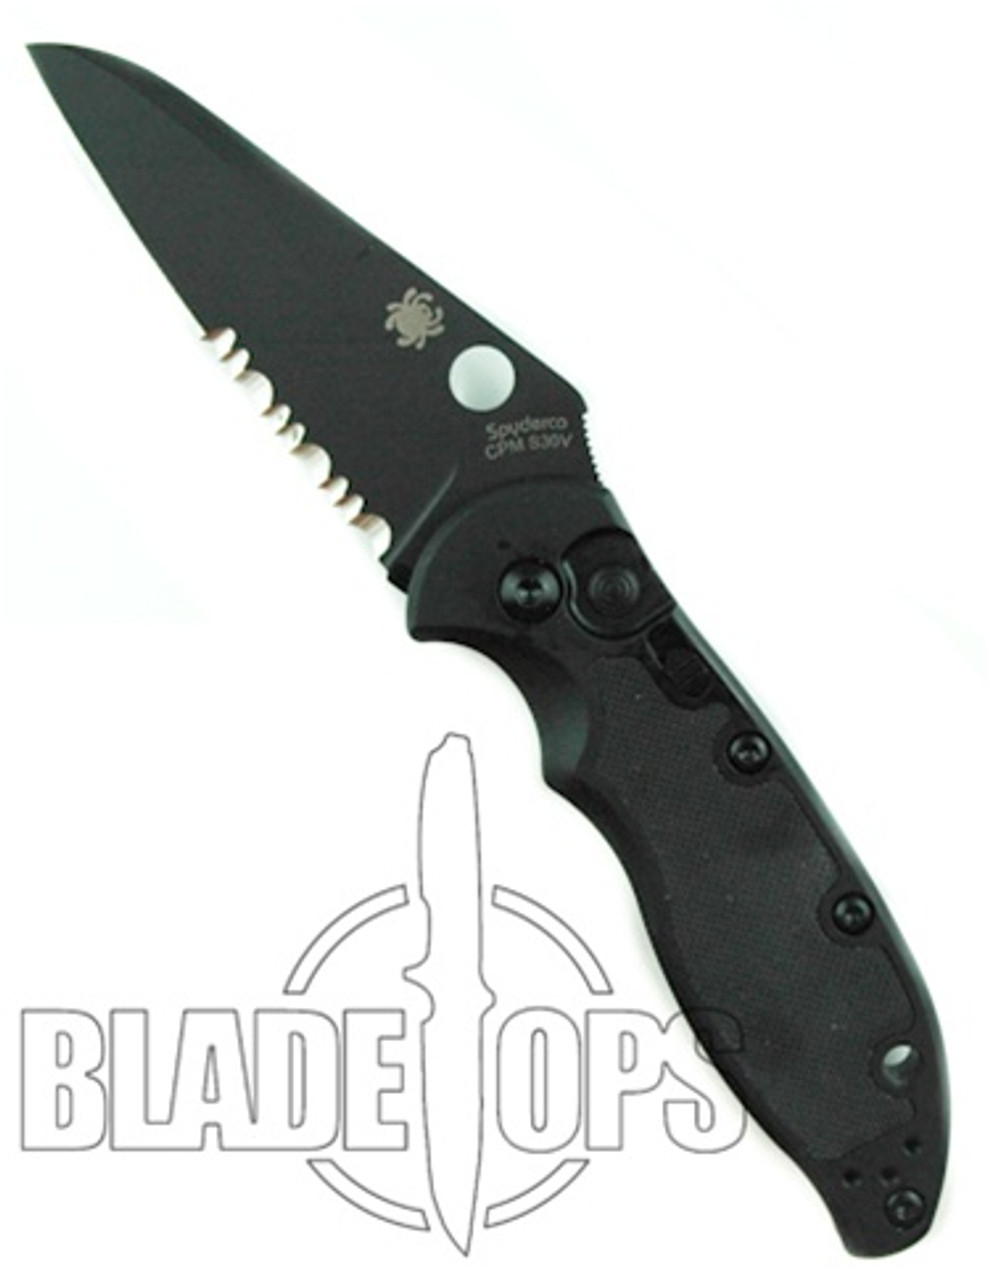 Spyderco Embassy Auto Knife, Tactical Black Blade, Part Serrated, C121BKPS